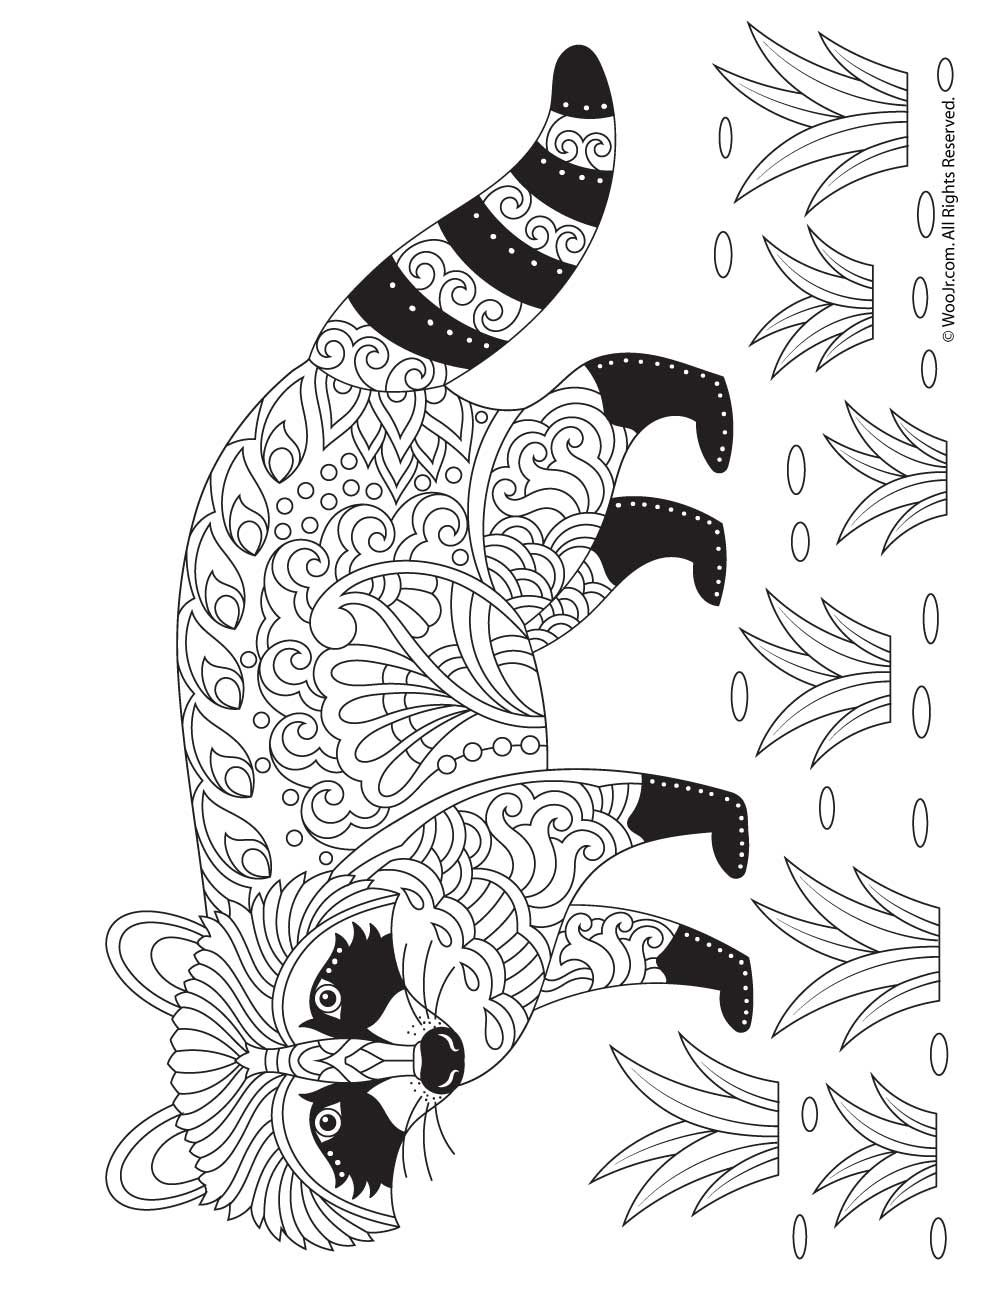 Raccoon Adult Coloring Page | Pinterest | Adult coloring, Raccoons ...